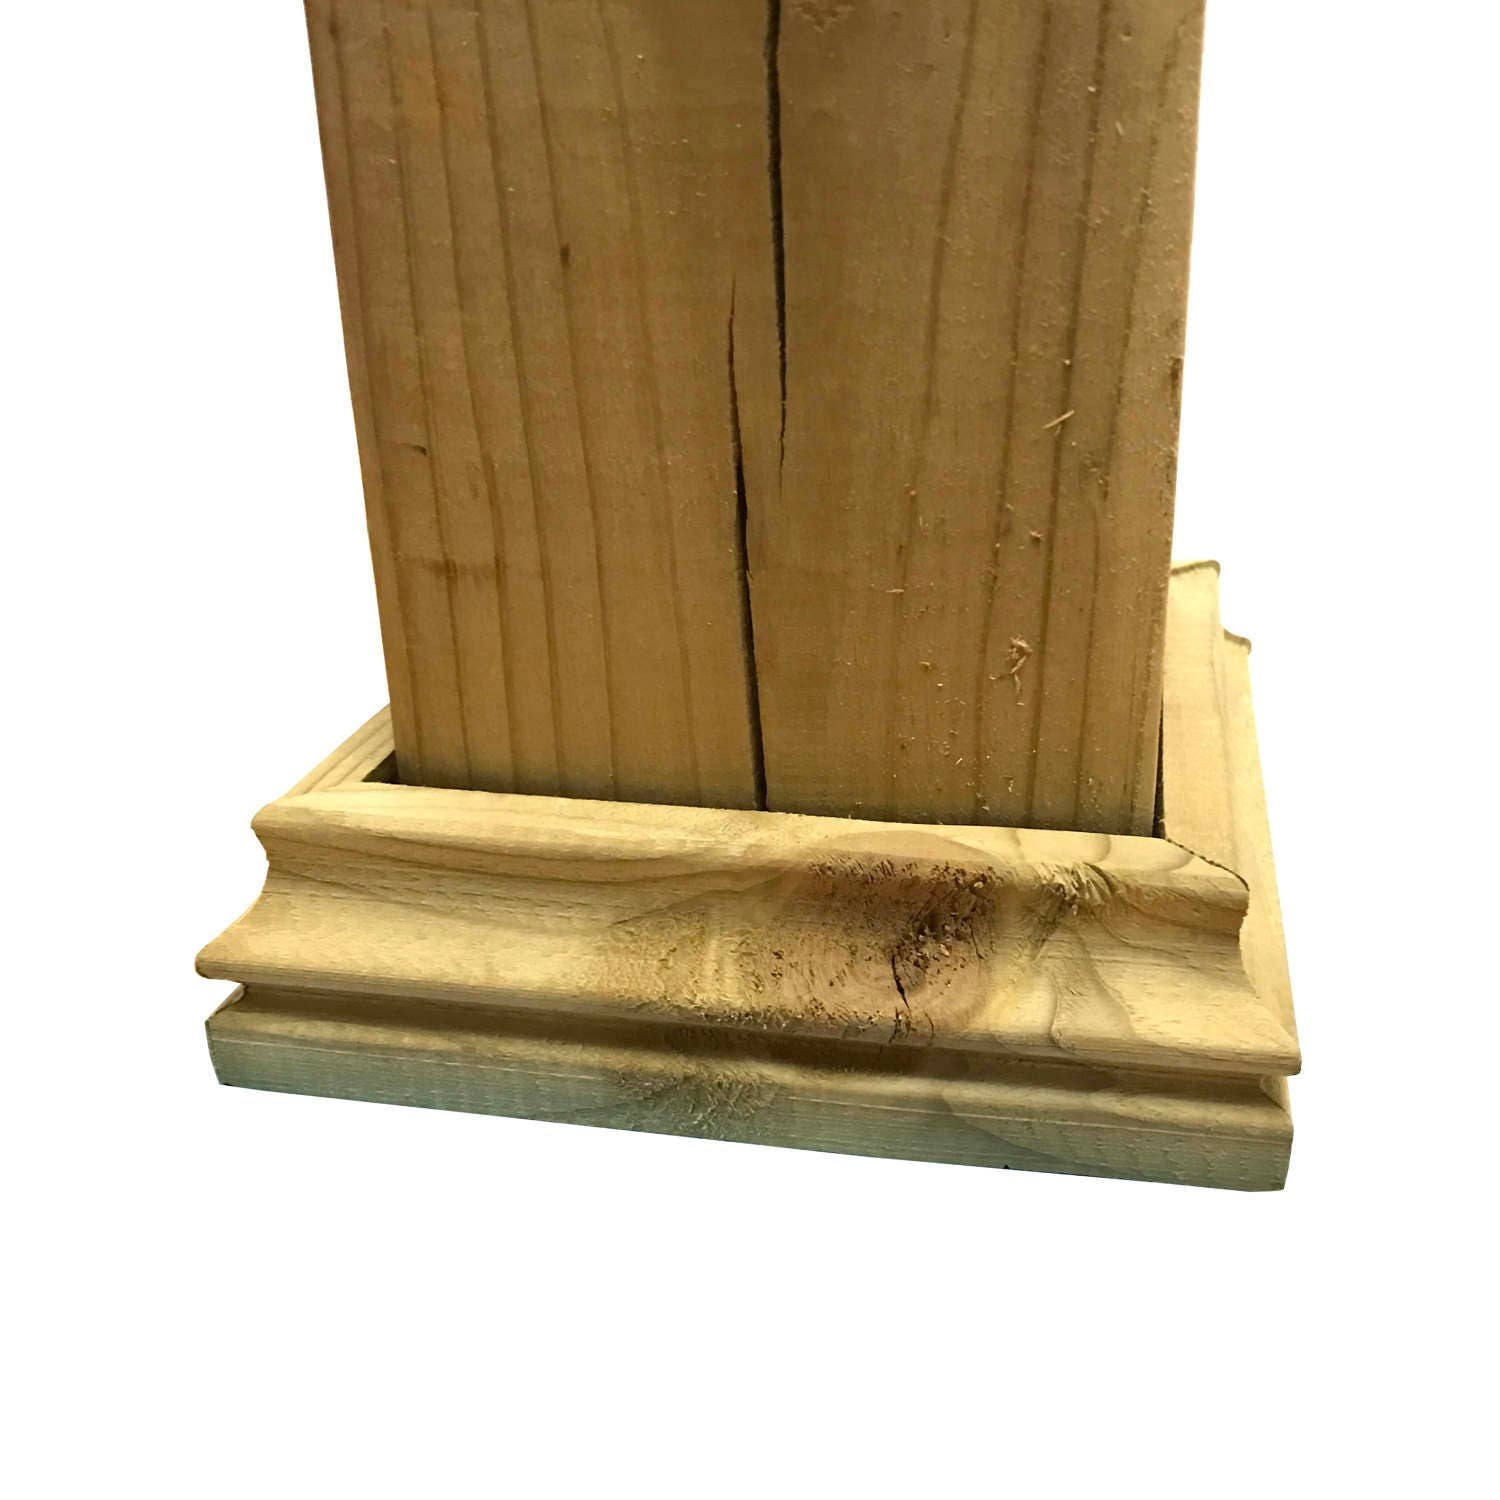 Wooden Post: Pressure Treated Wood Decorative Post Base For Fence And